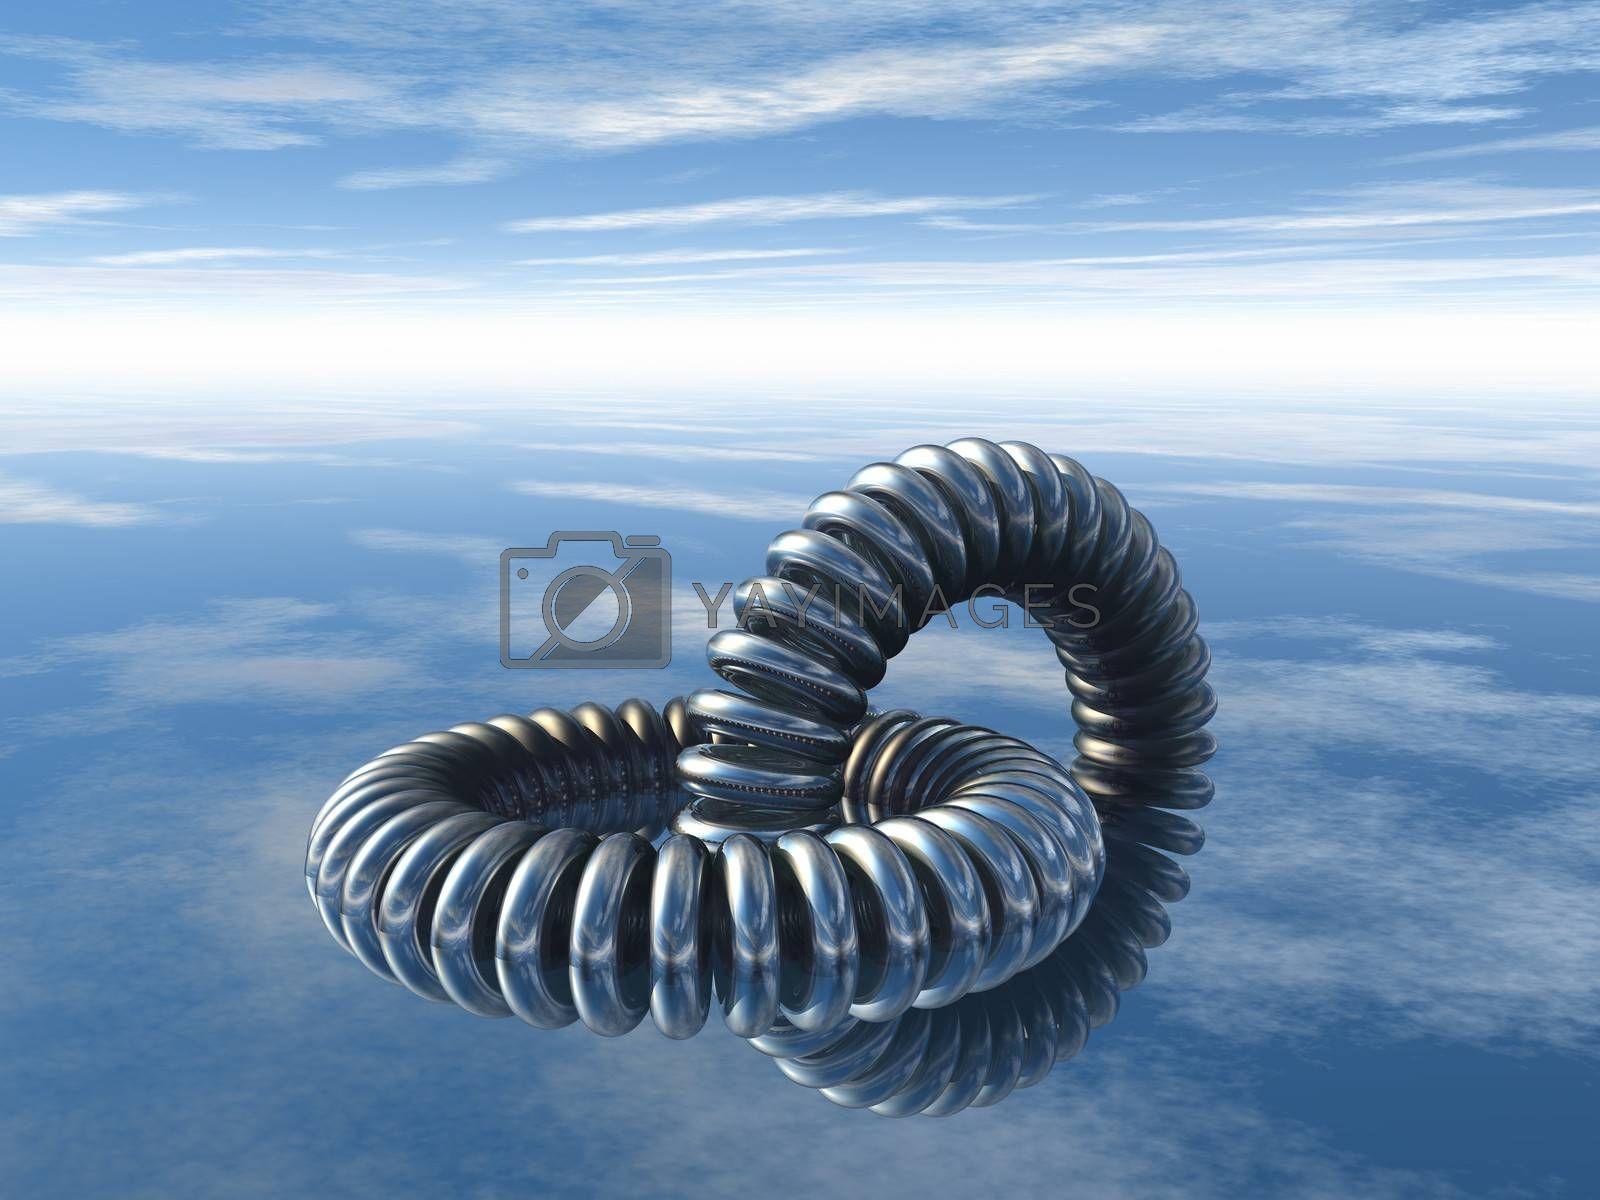 abstract metal rings construction under cloudy blue sky - 3d illustration